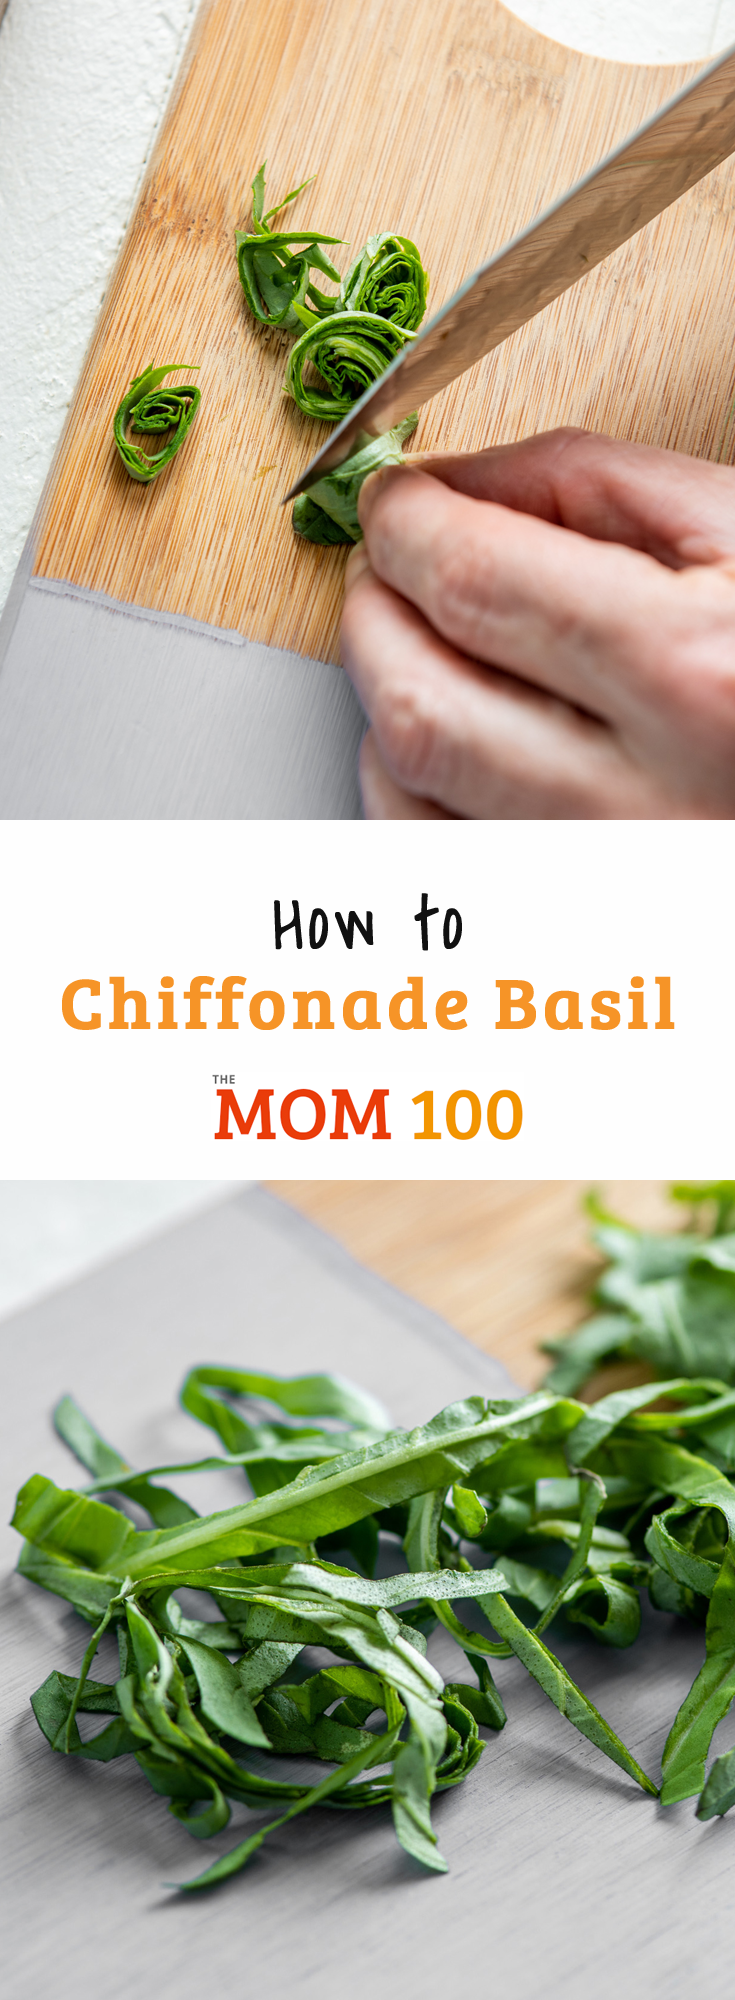 How to Chiffonade Basil: Everything you need to know about chiffonading basil and other herbs and lettuces -- including what chiffonade means!